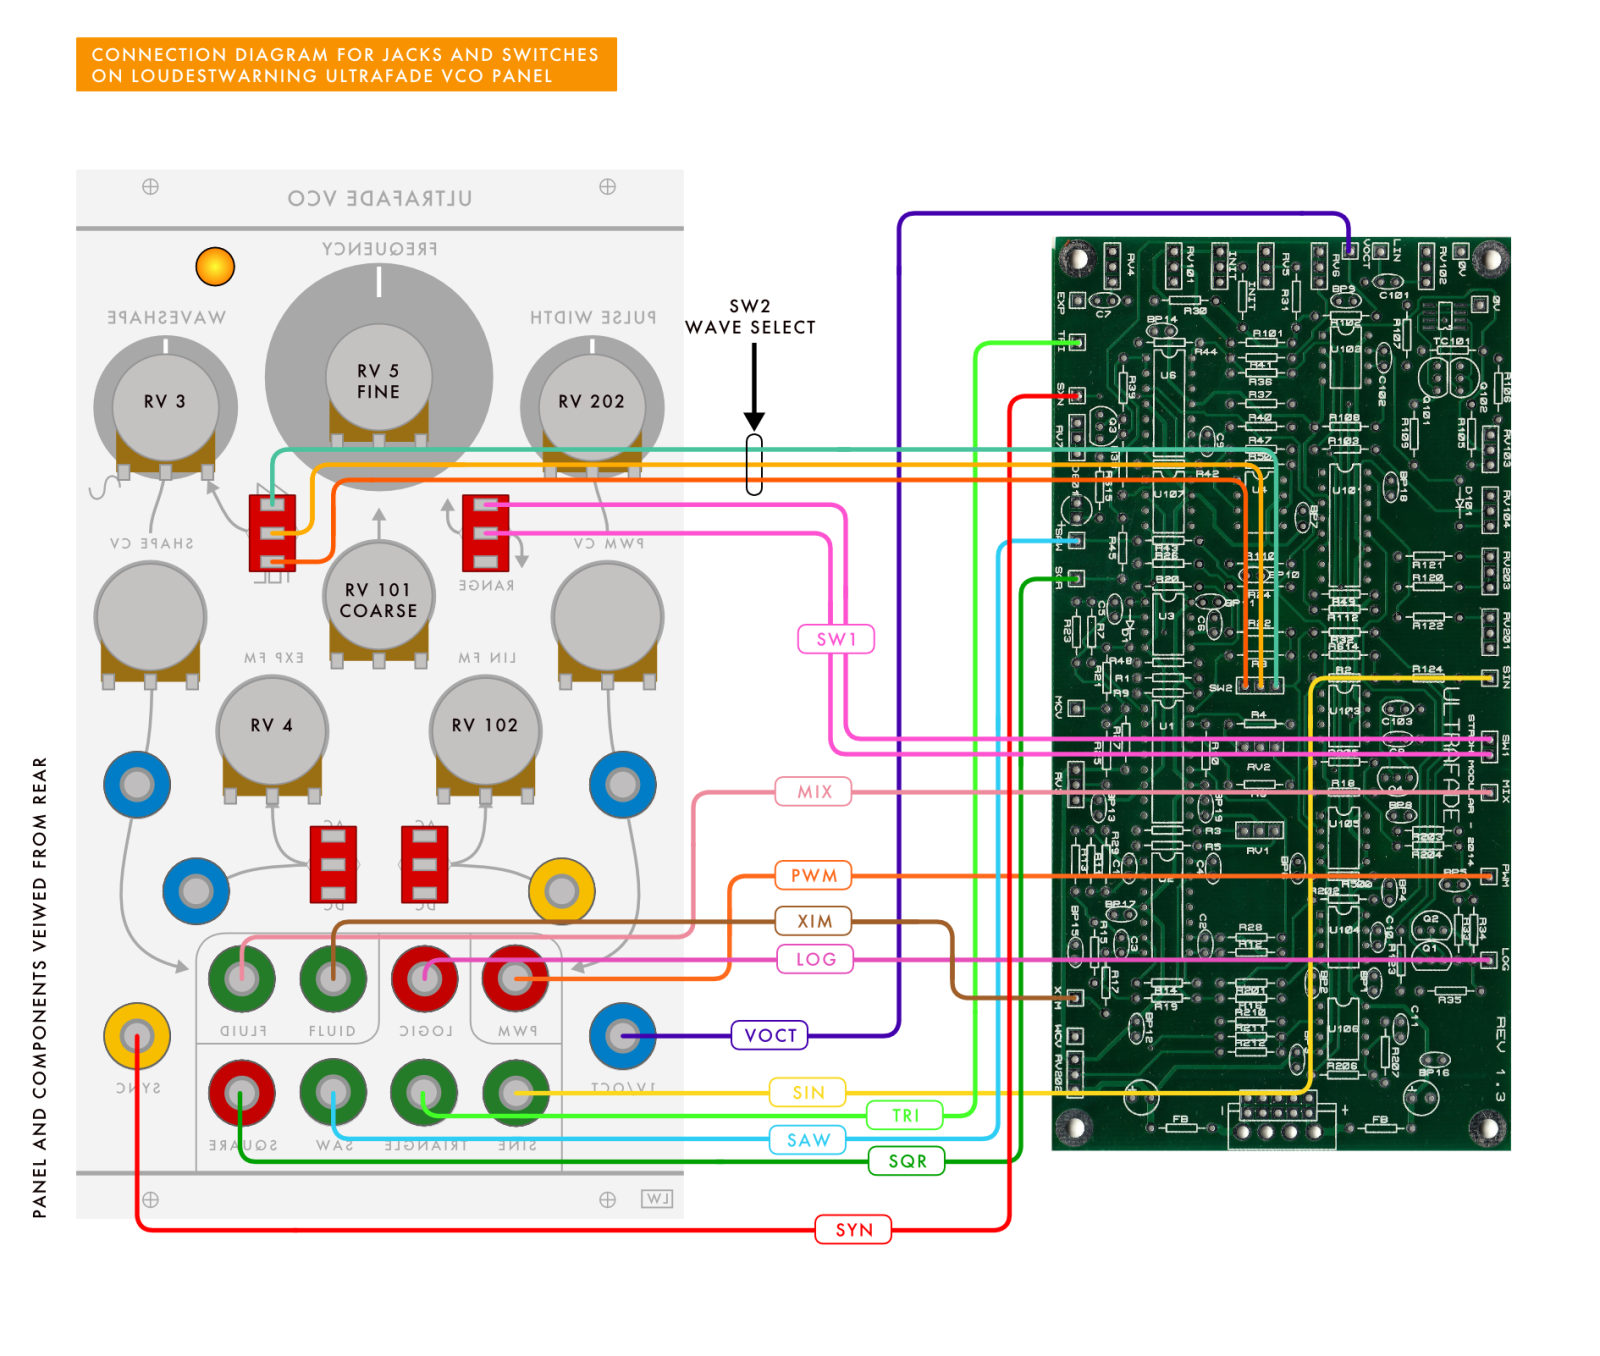 ULTRAFADE WIRING DIAGRAM JACKS AND SWITCHES V2